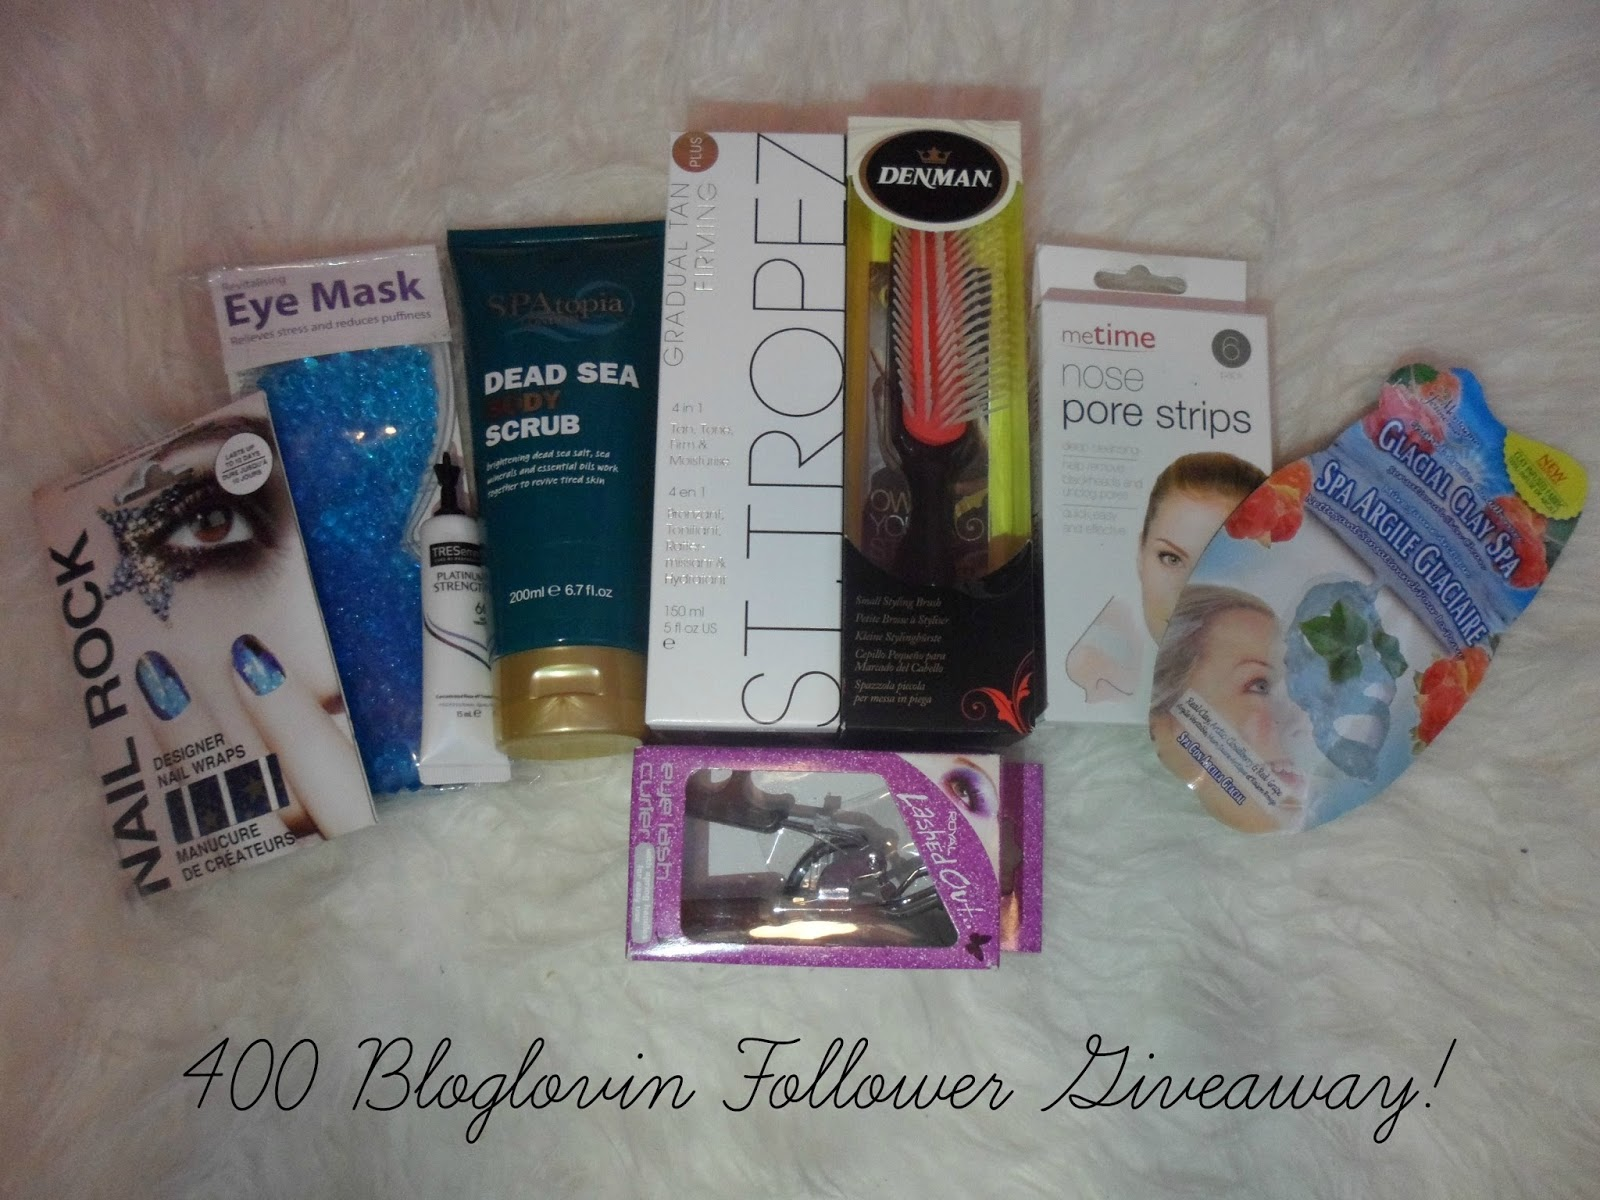 400 BLOGLOVIN FOLLOWER GIVEAWAY